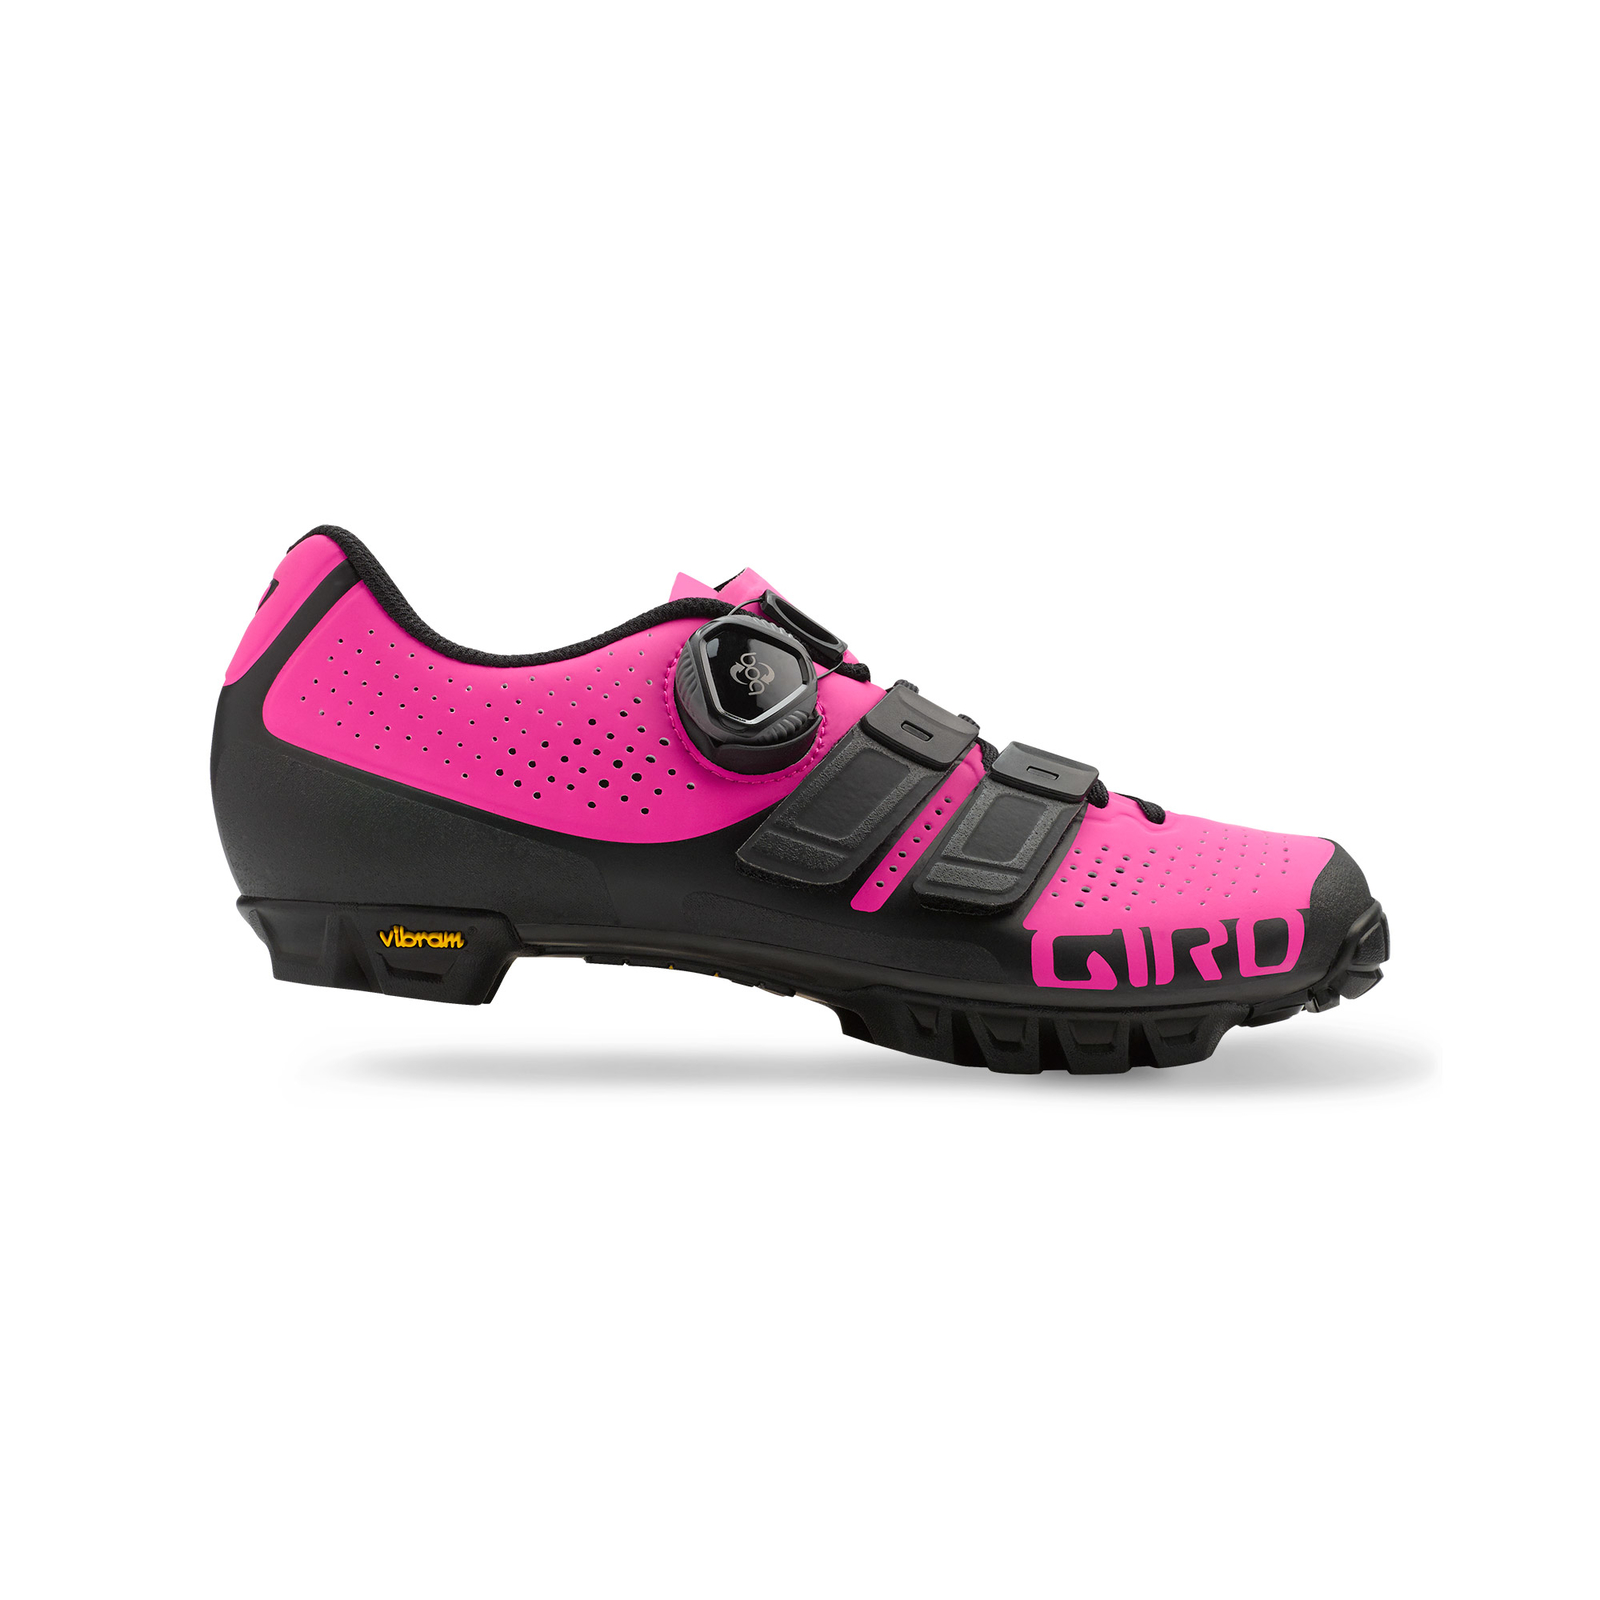 giro sica techlace damen mtb fahrrad schuhe schwarz pink 2018 von top marken online kaufen. Black Bedroom Furniture Sets. Home Design Ideas